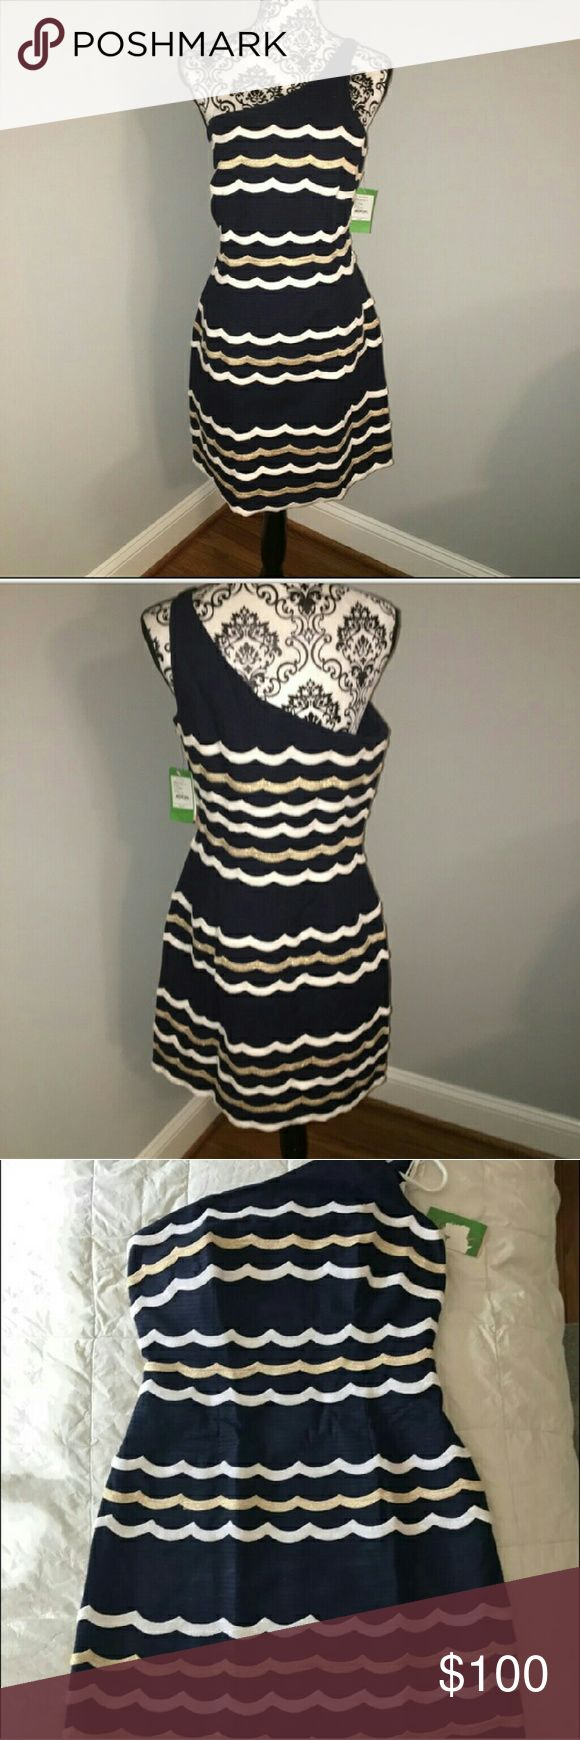 NWT Lilly Pulitzer Taylar Dress Scallopy Stripey Beautiful dress.  True navy with white and gold scallop stripes.  I LOVE this dress.  Just selling because it's too small on me.  Retails for MSRP $299. Lilly Pulitzer Dresses One Shoulder